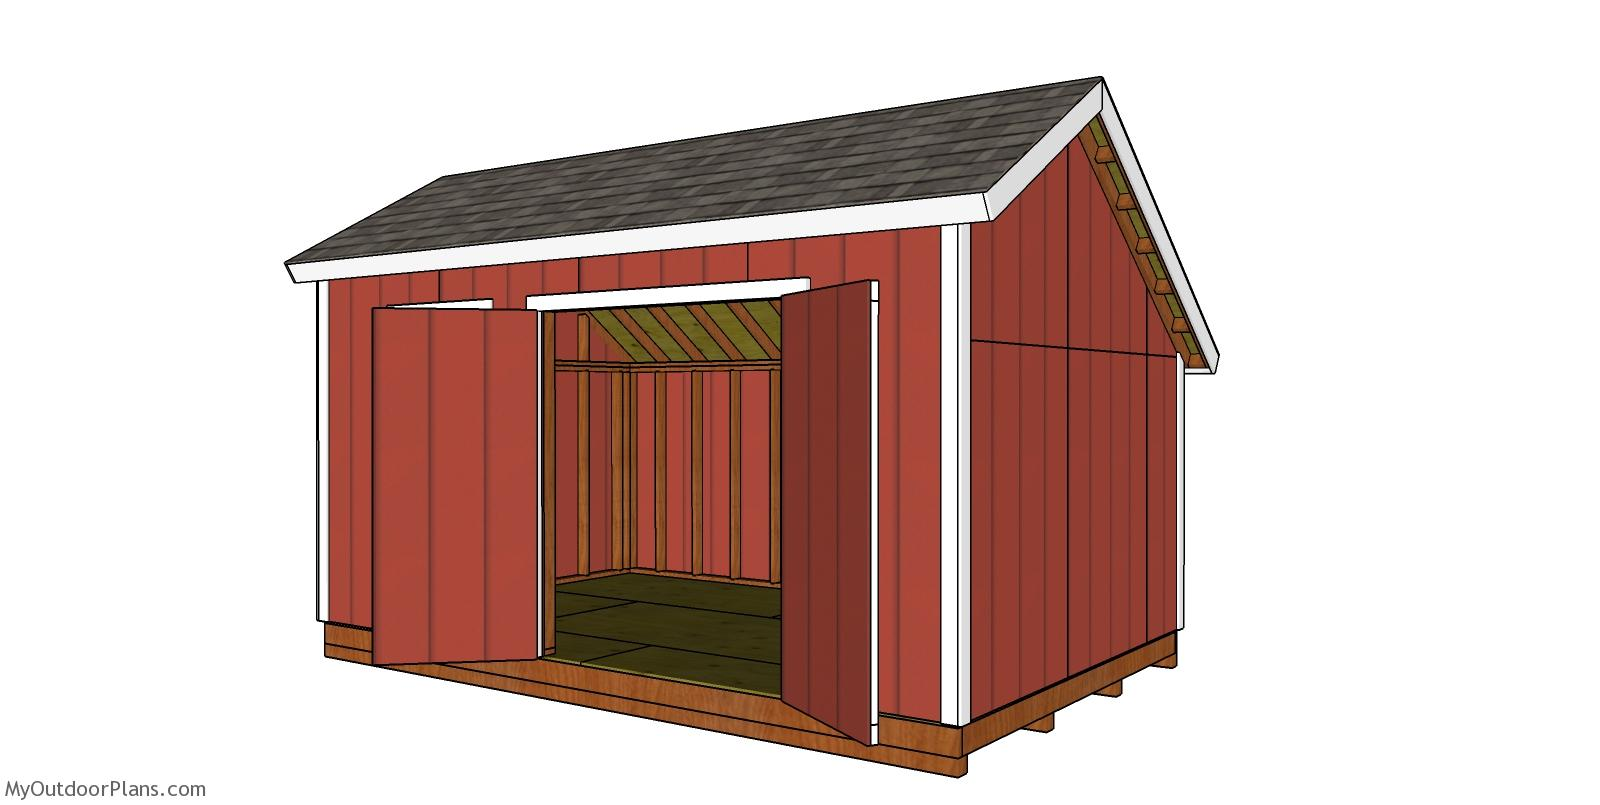 10x16 Saltbox Shed Roof Plans